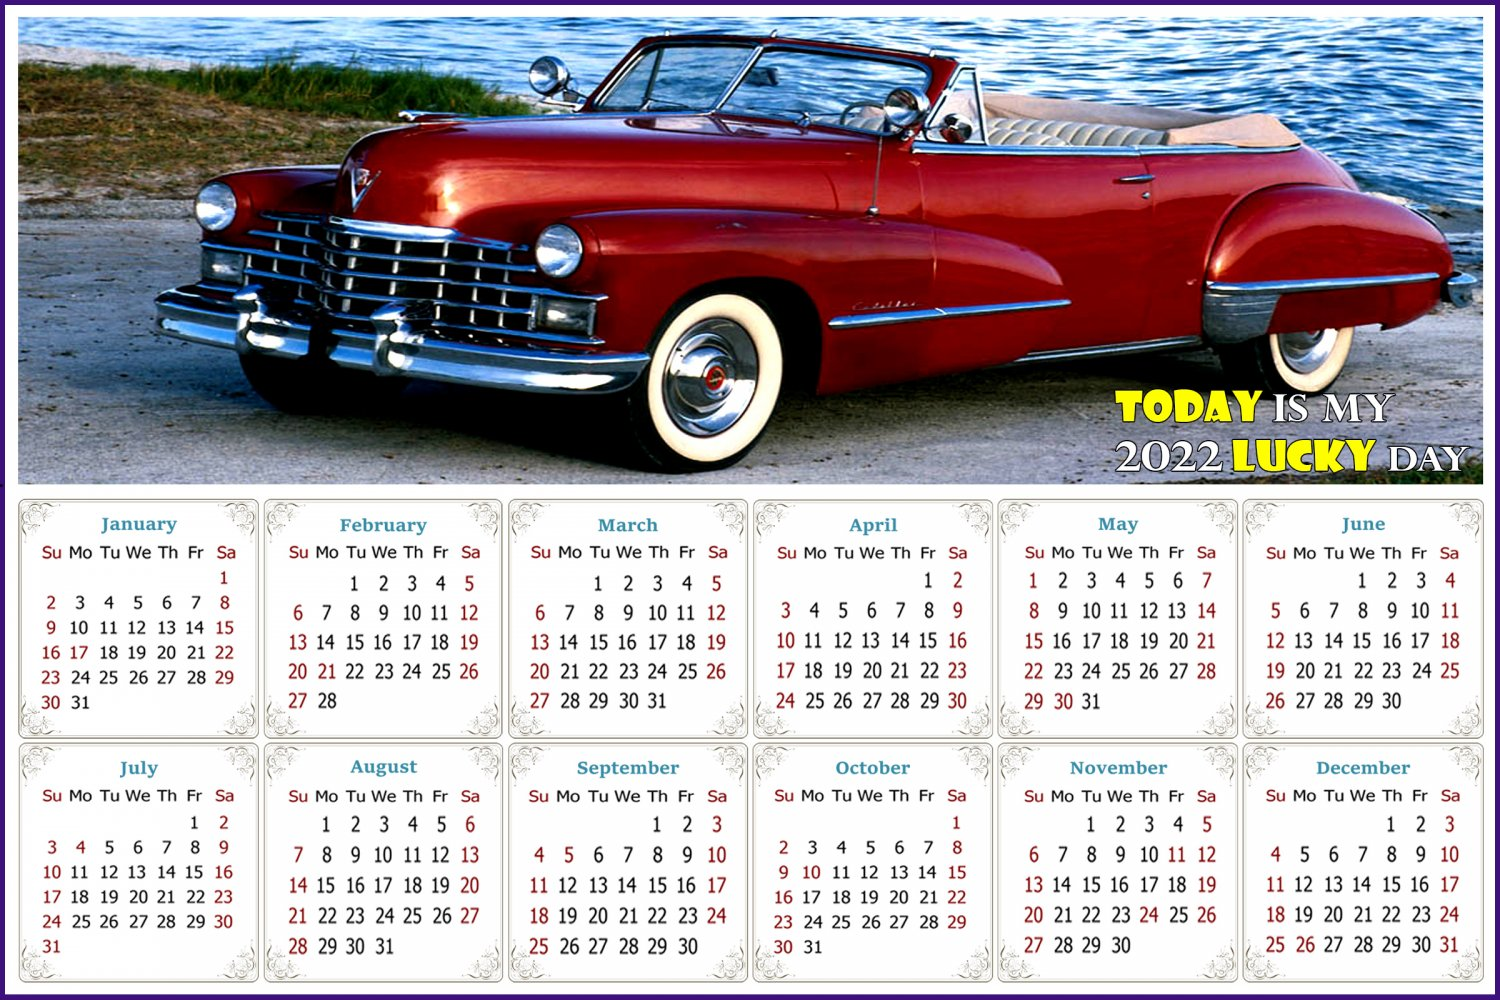 2022 Magnetic Calendar - Calendar Magnets - Today is my Lucky Day - Cars Edition #44